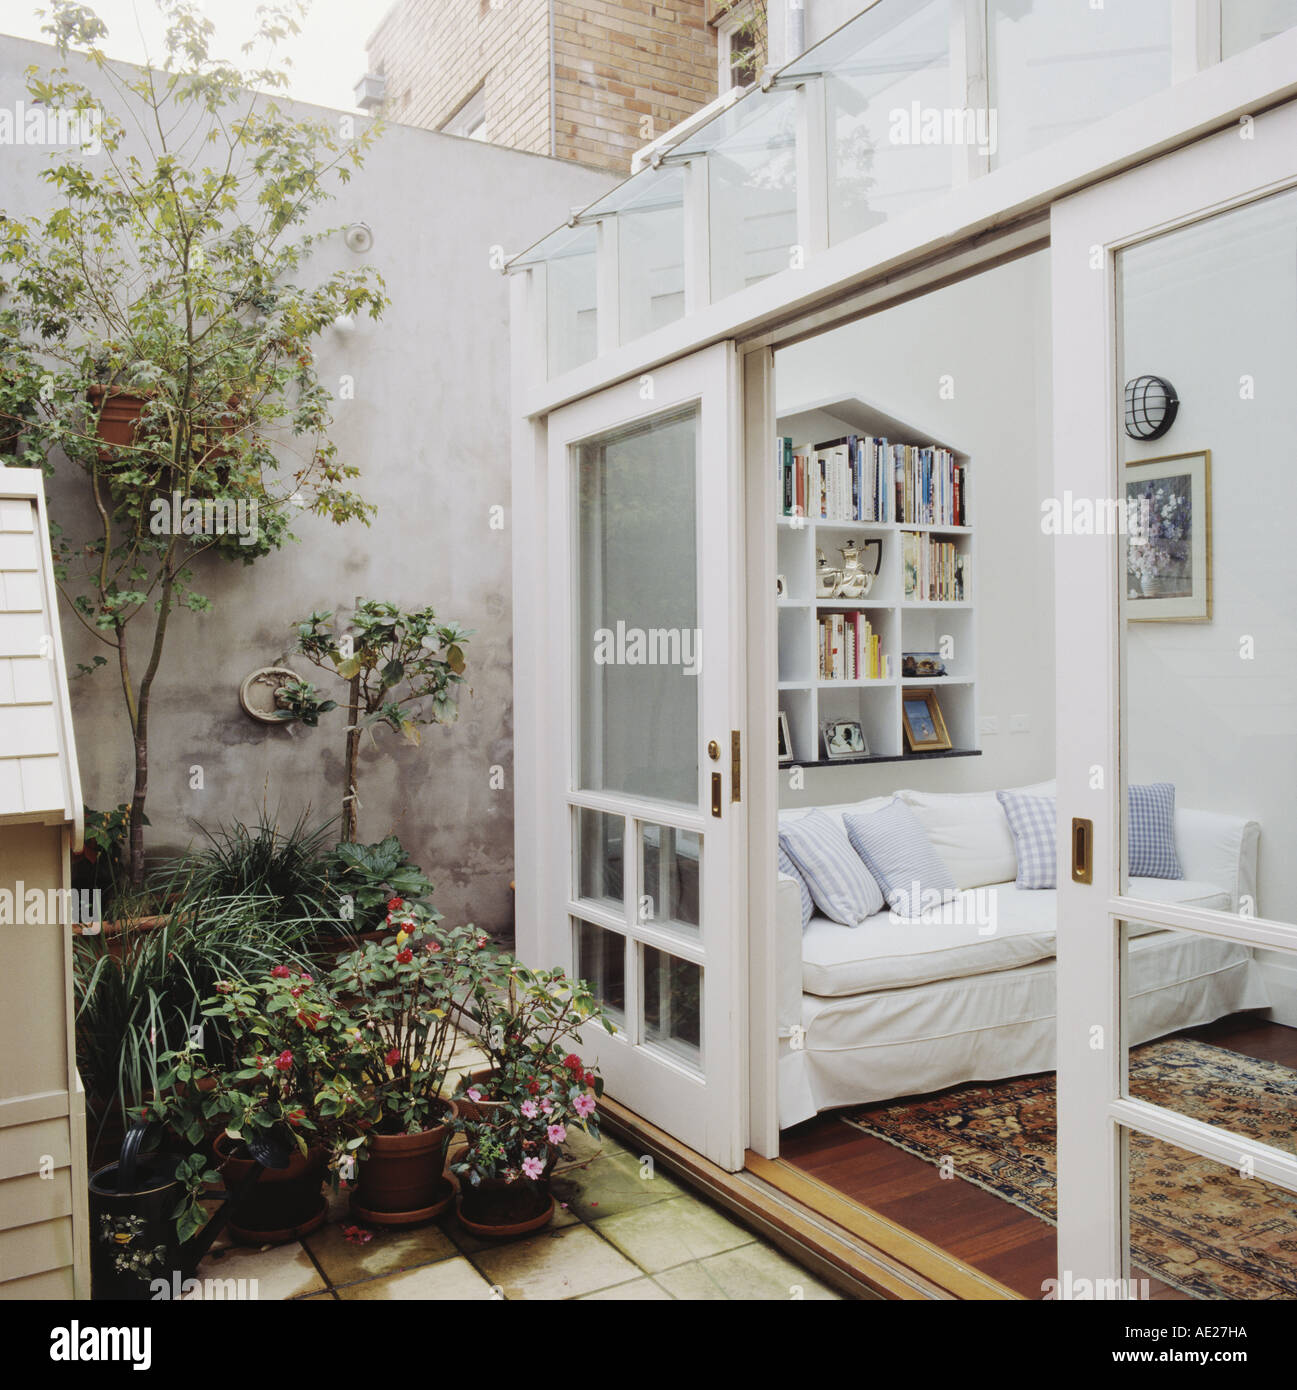 View from courtyard garden of white sofa in modern white living